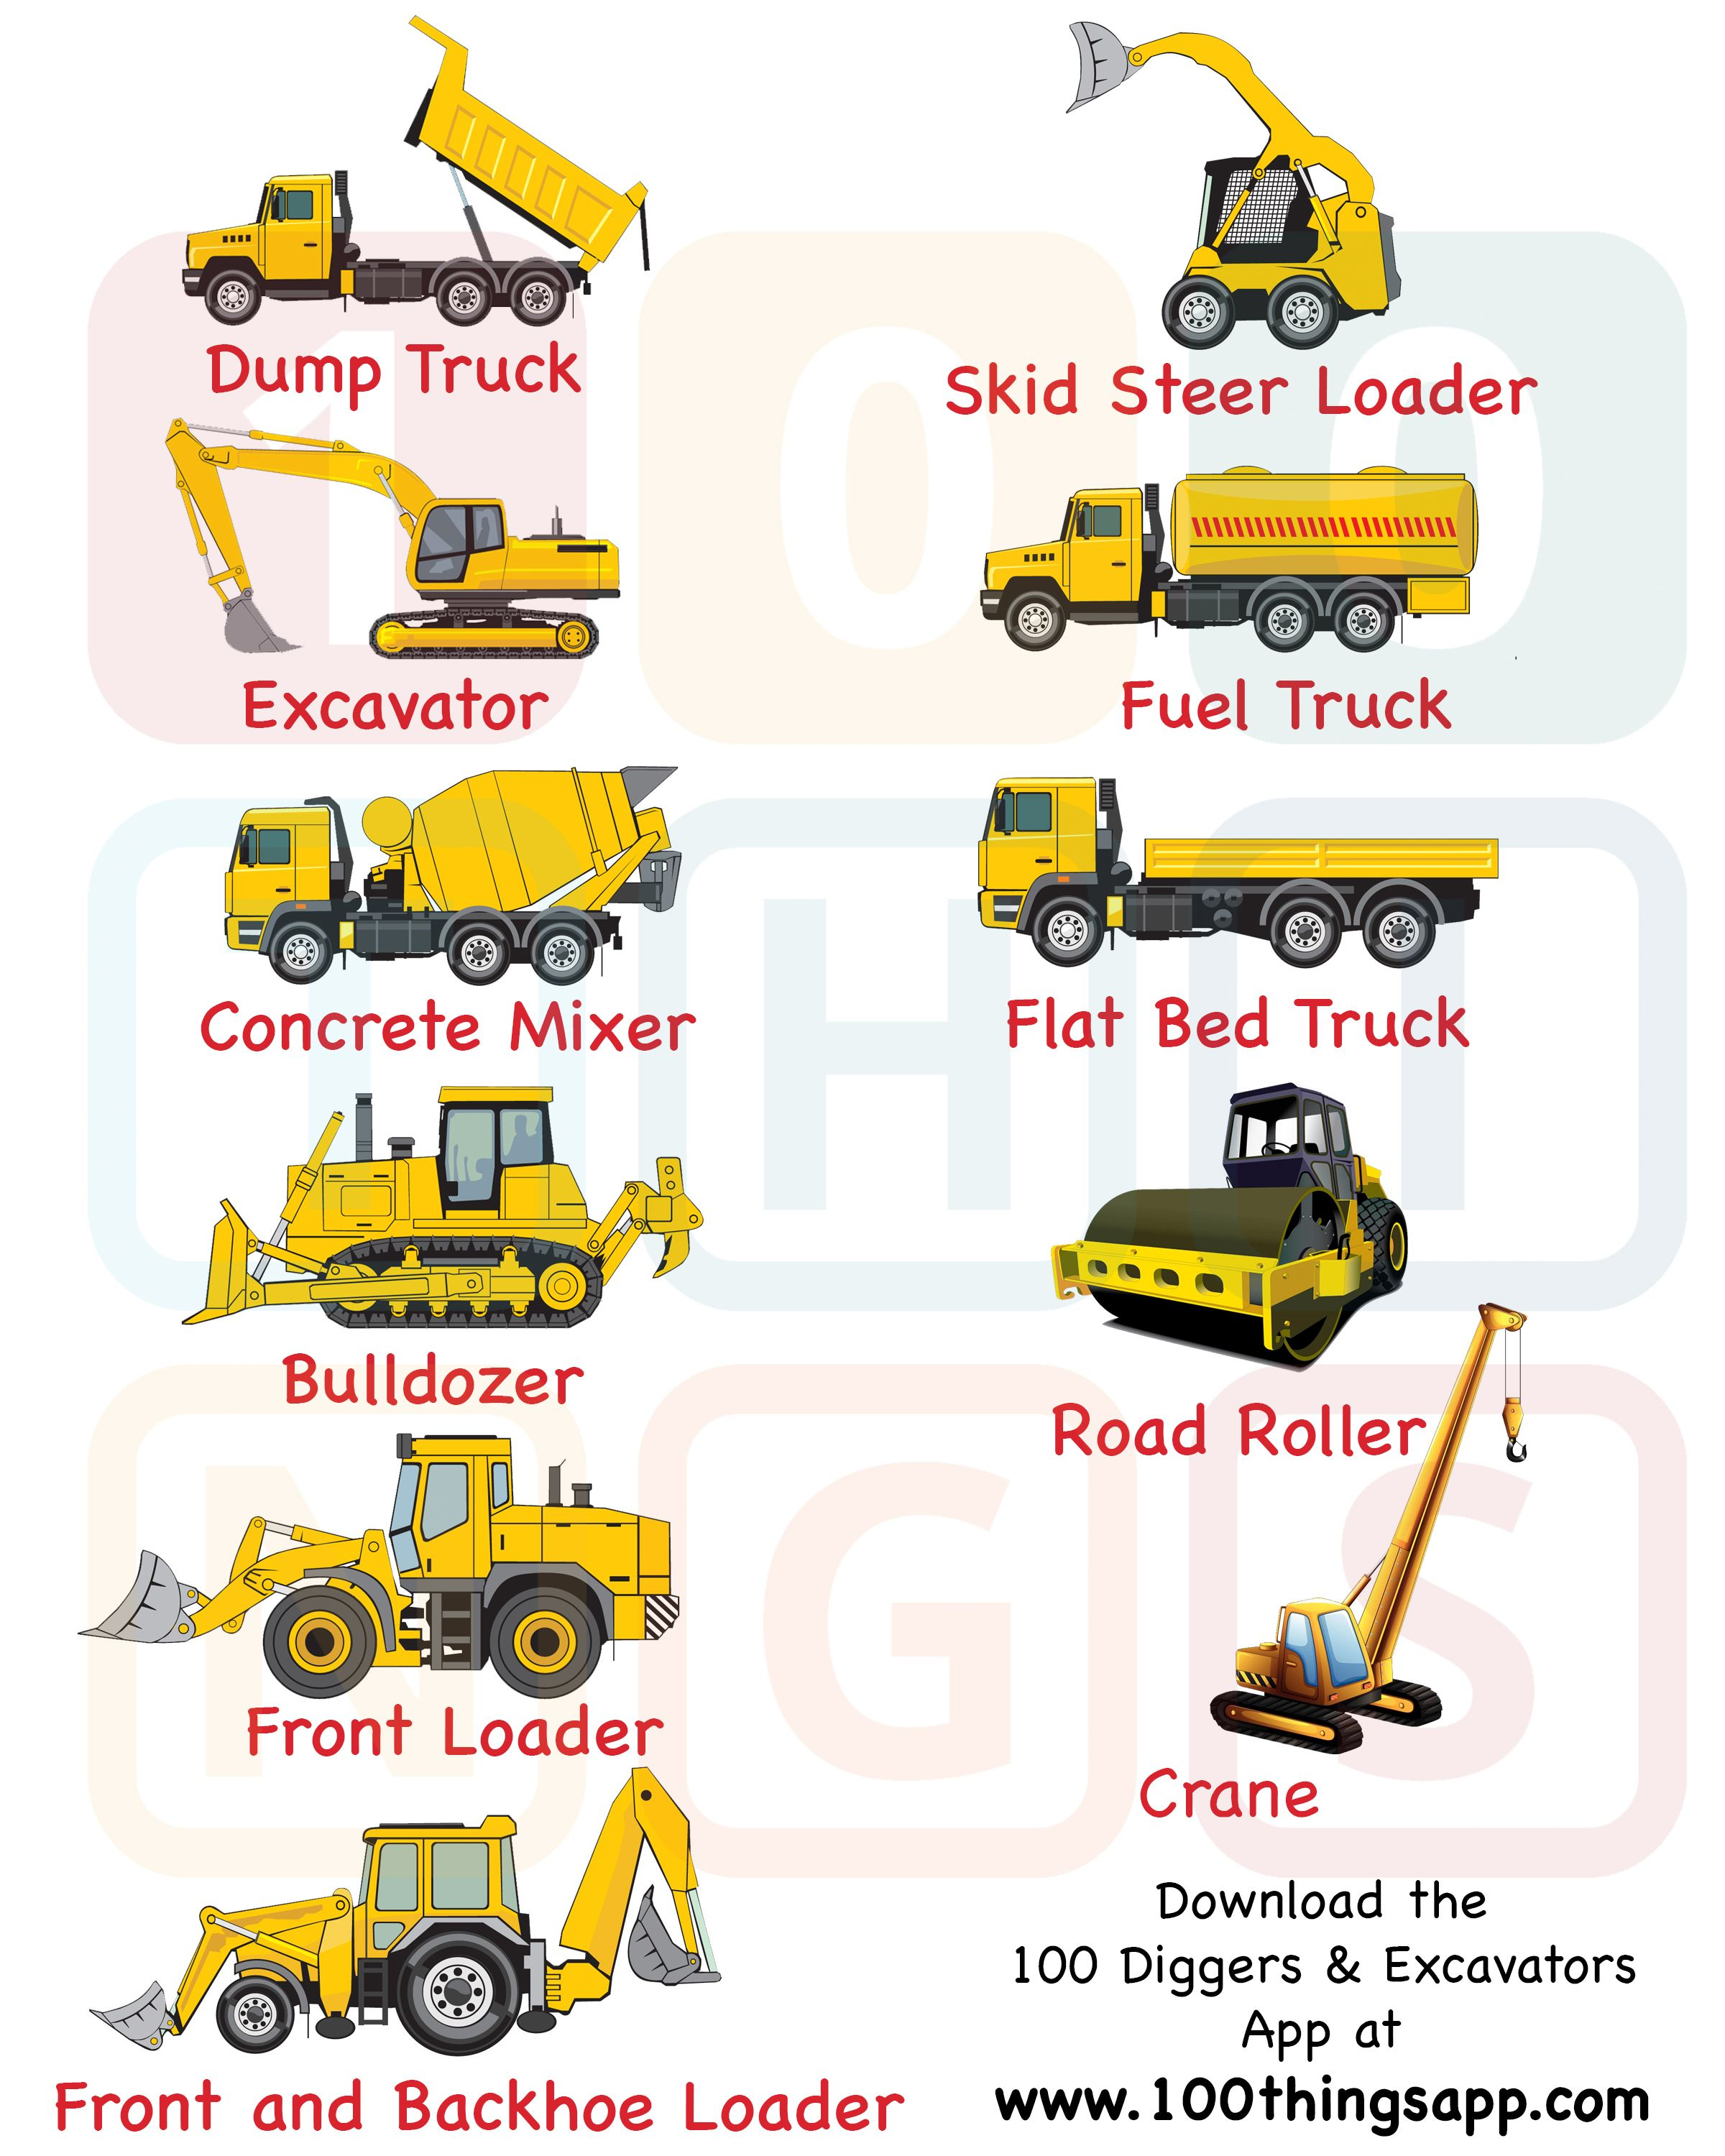 legend and list of the types of construction trucks vehicles